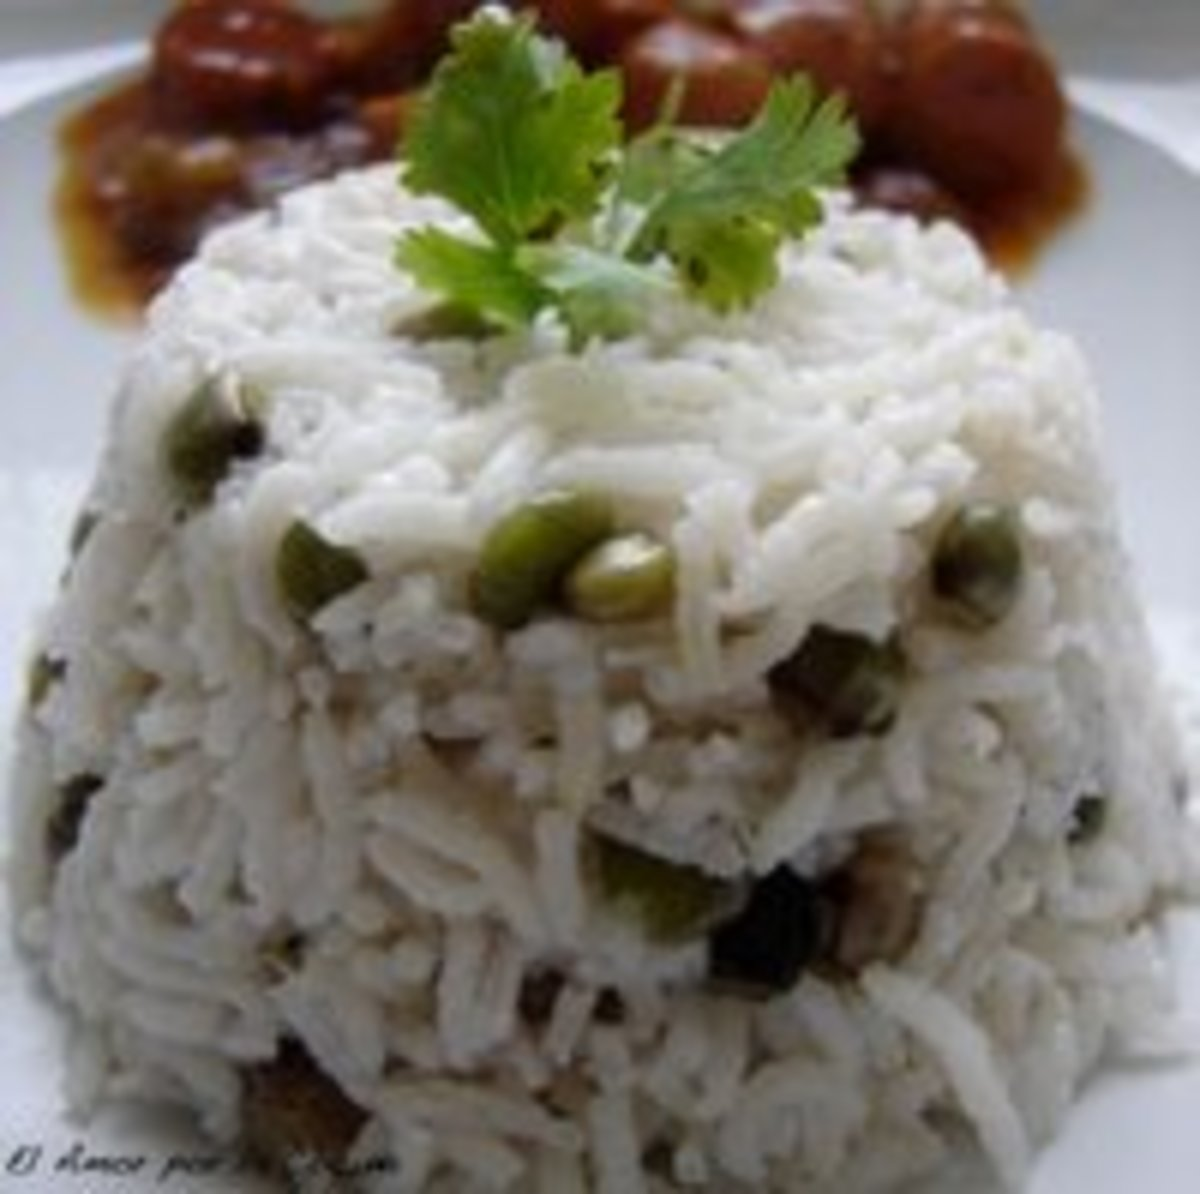 Arroz Con Guandu - Rice with Guandu